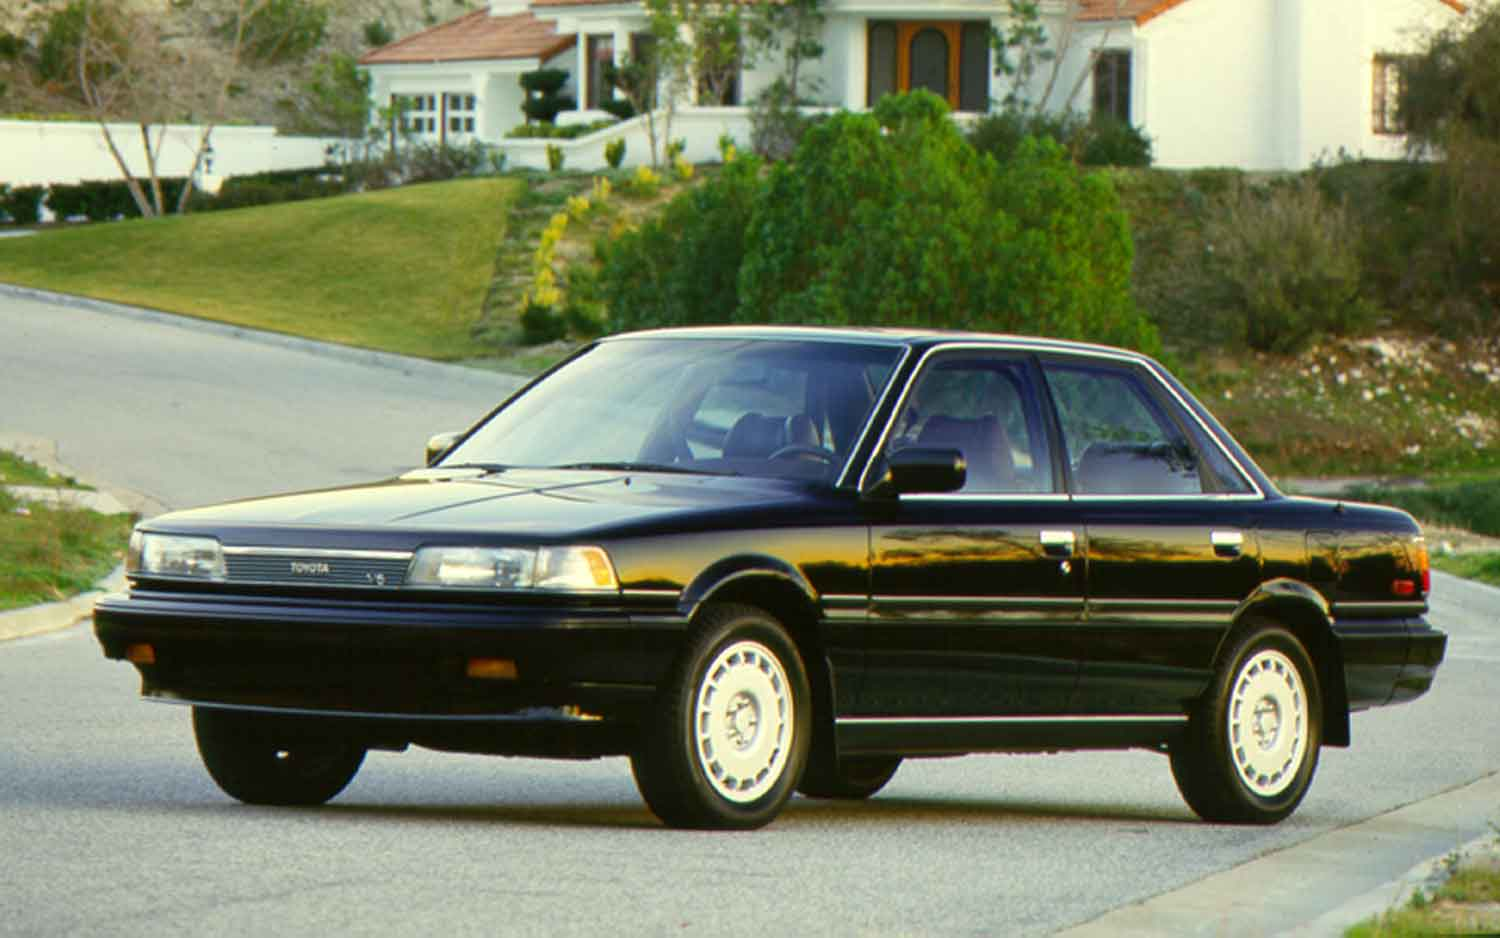 1984 Toyota Camry Information And Photos Momentcar